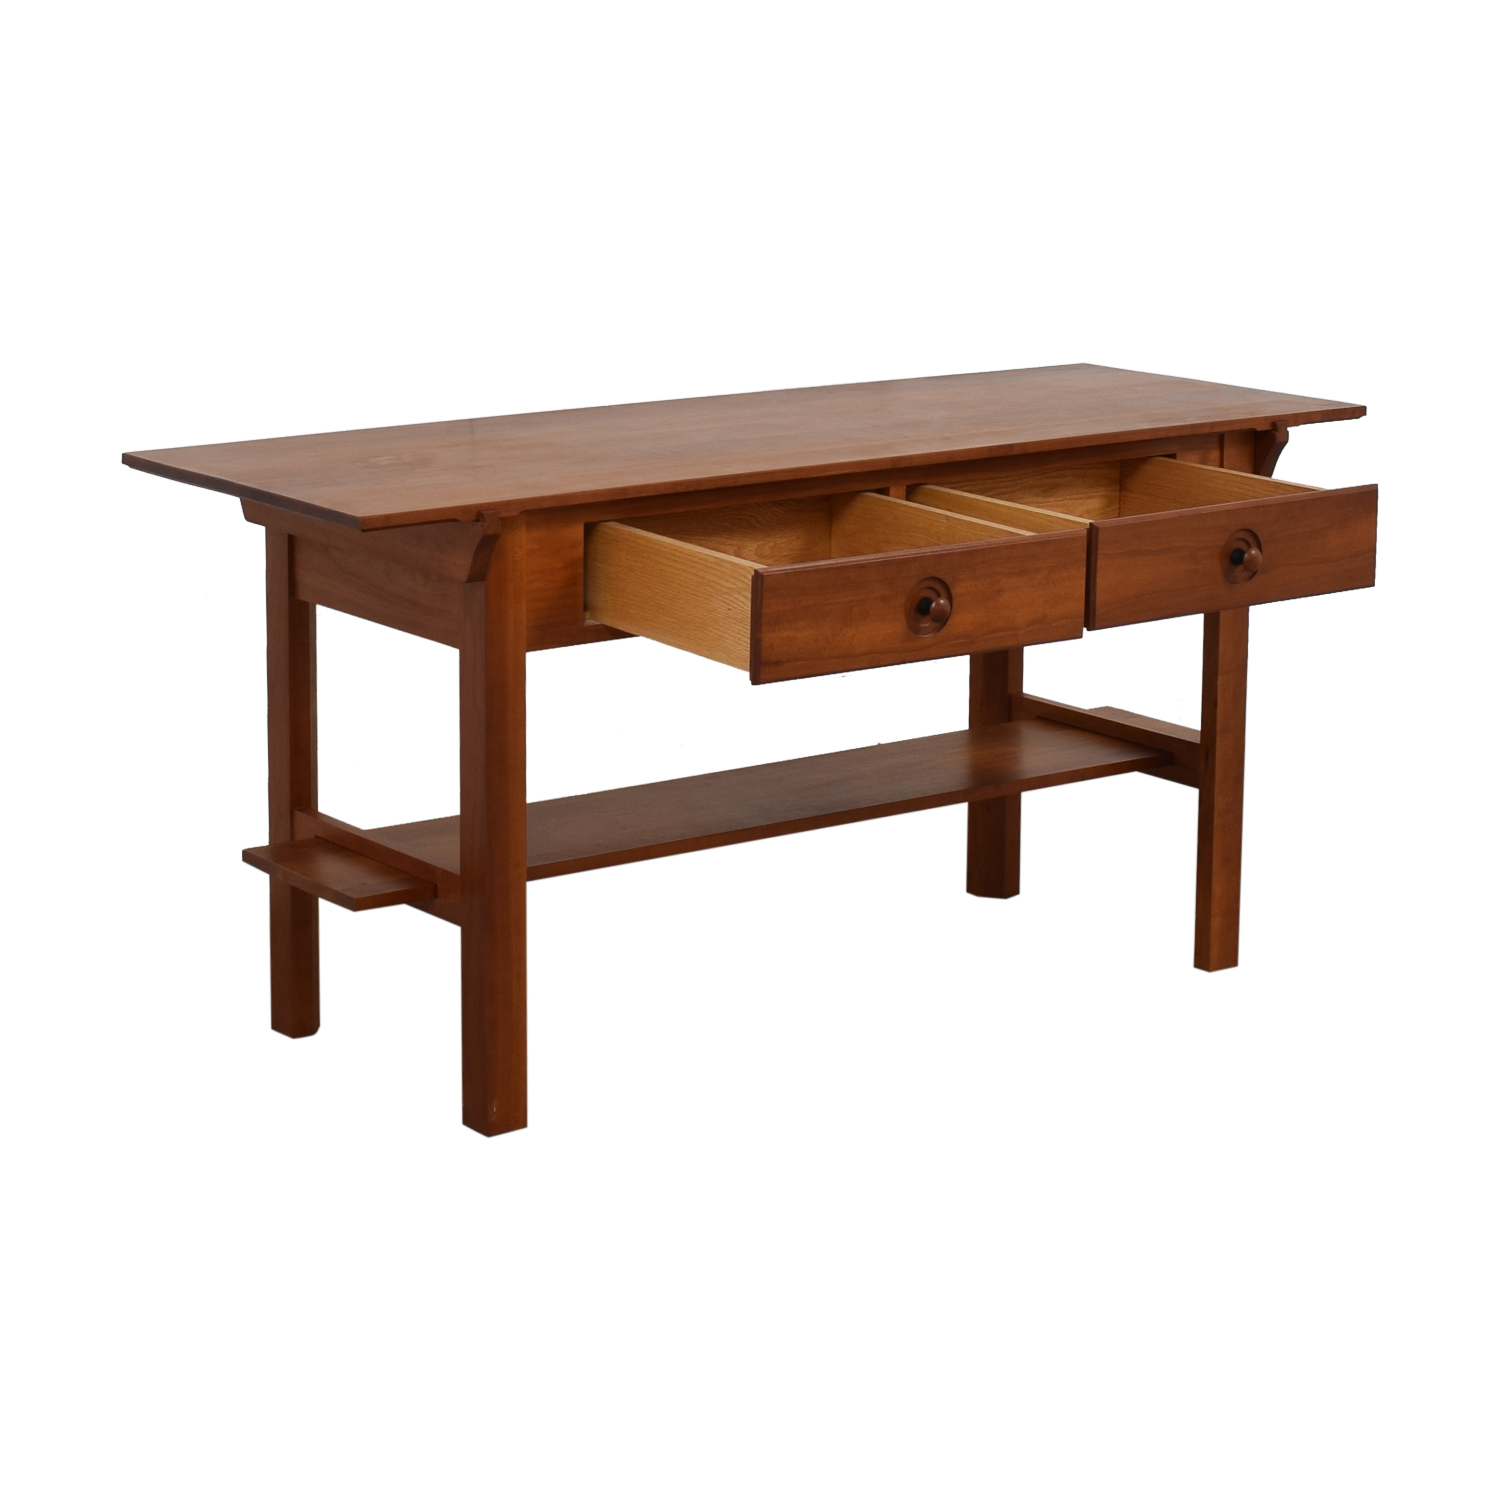 Scott Jordon Scott Jordon Wood Two-Drawer Utility Table nyc